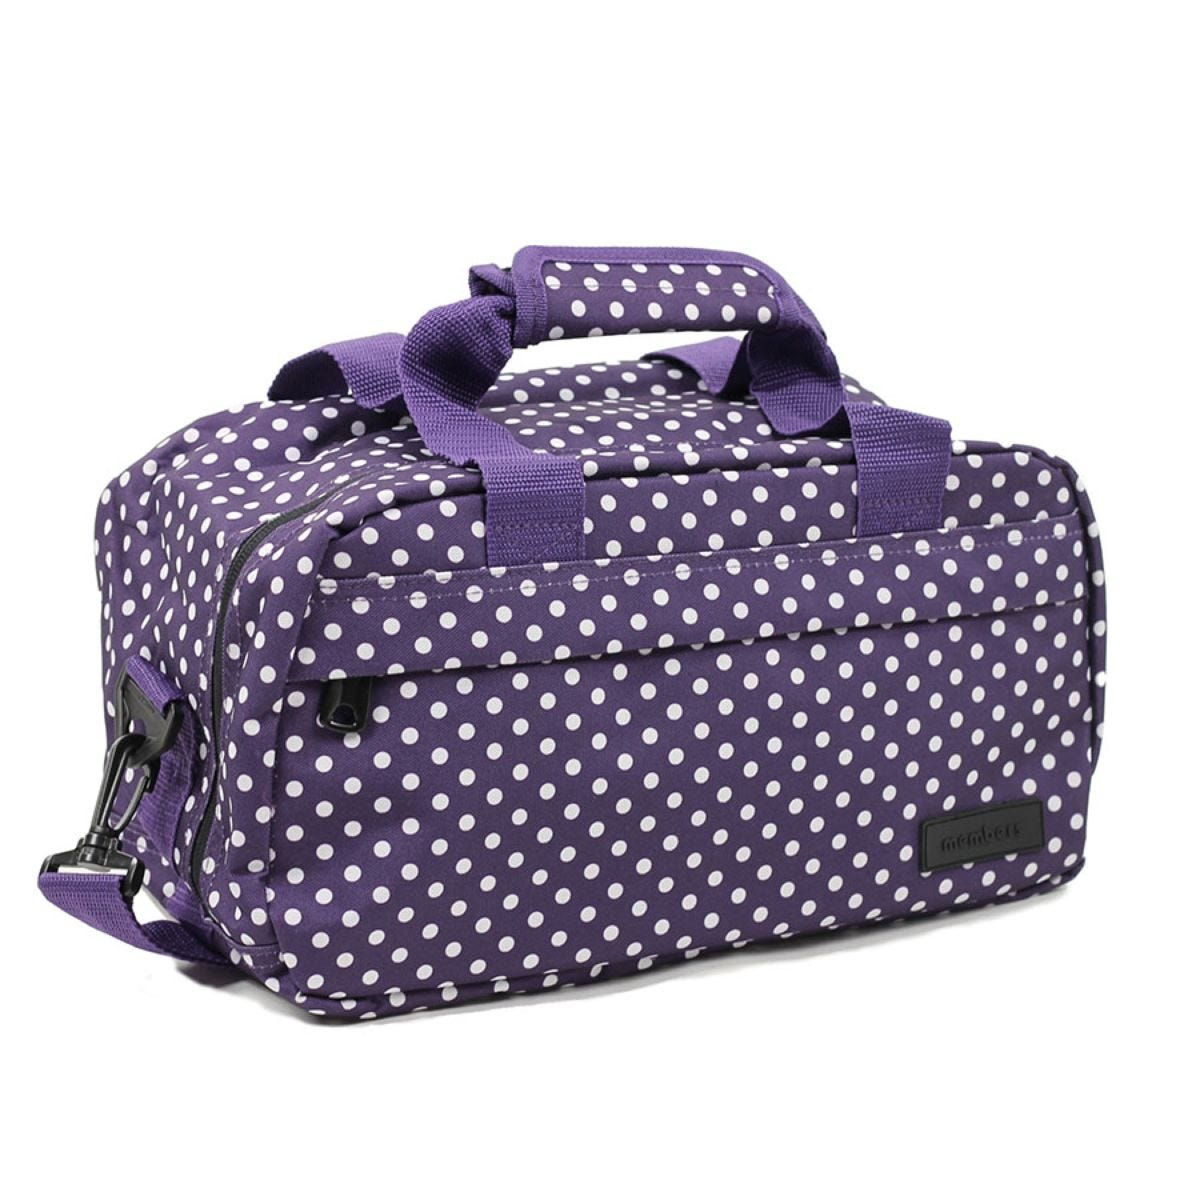 Members by Rock Luggage Essential Under-Seat Hand Luggage Bag – Purple Polka Dots